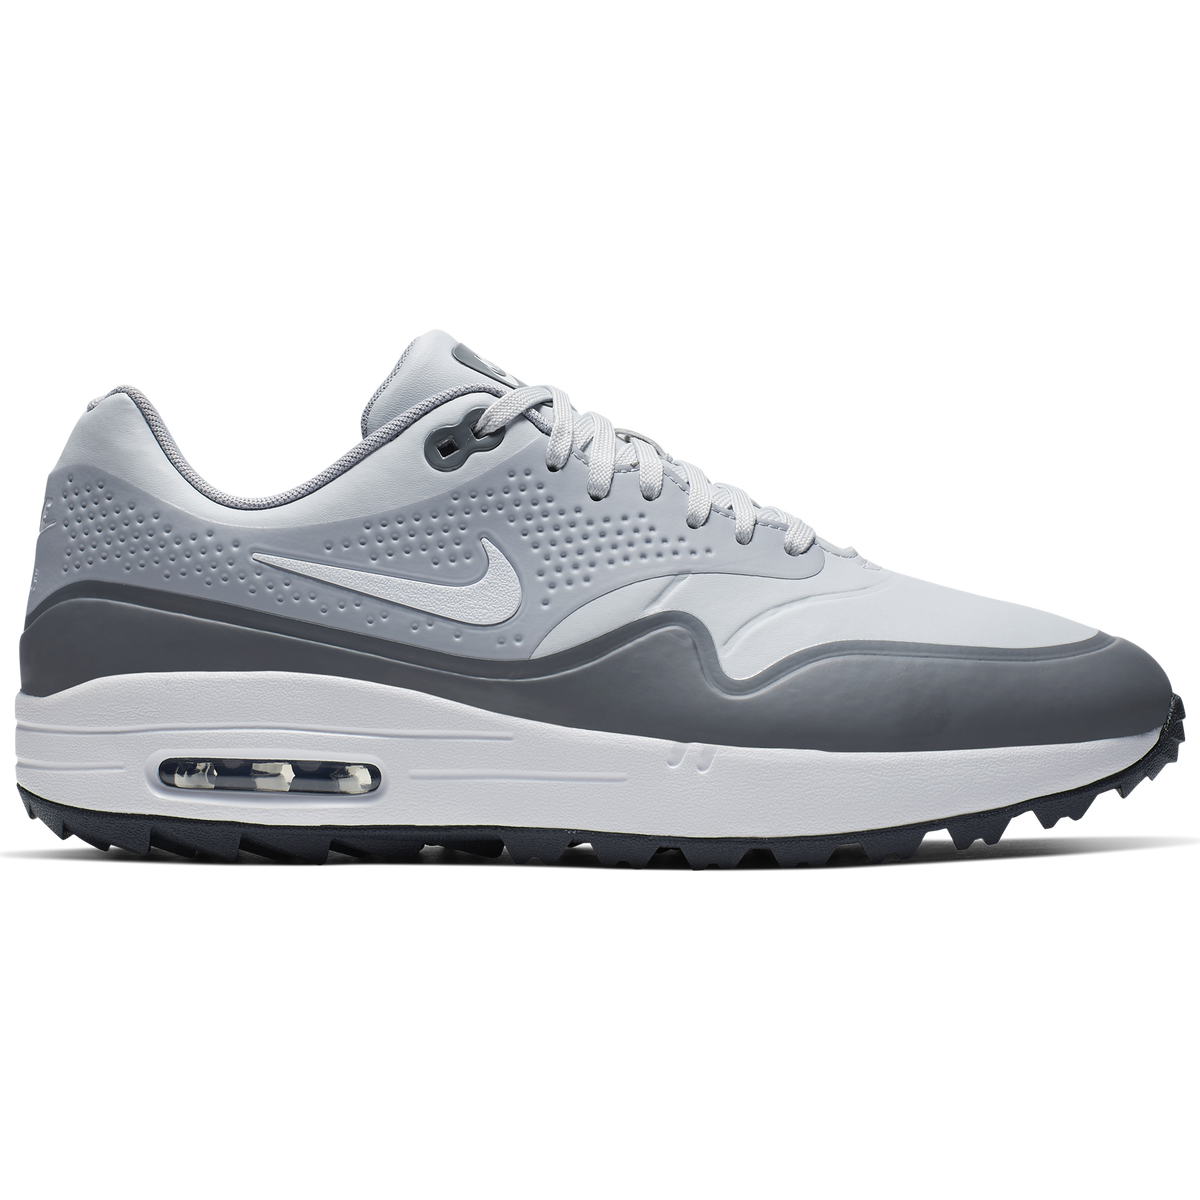 official photos 296cf d46f4 Air Max 1 G Men  39 s Golf Shoe - White Grey Zoom Image